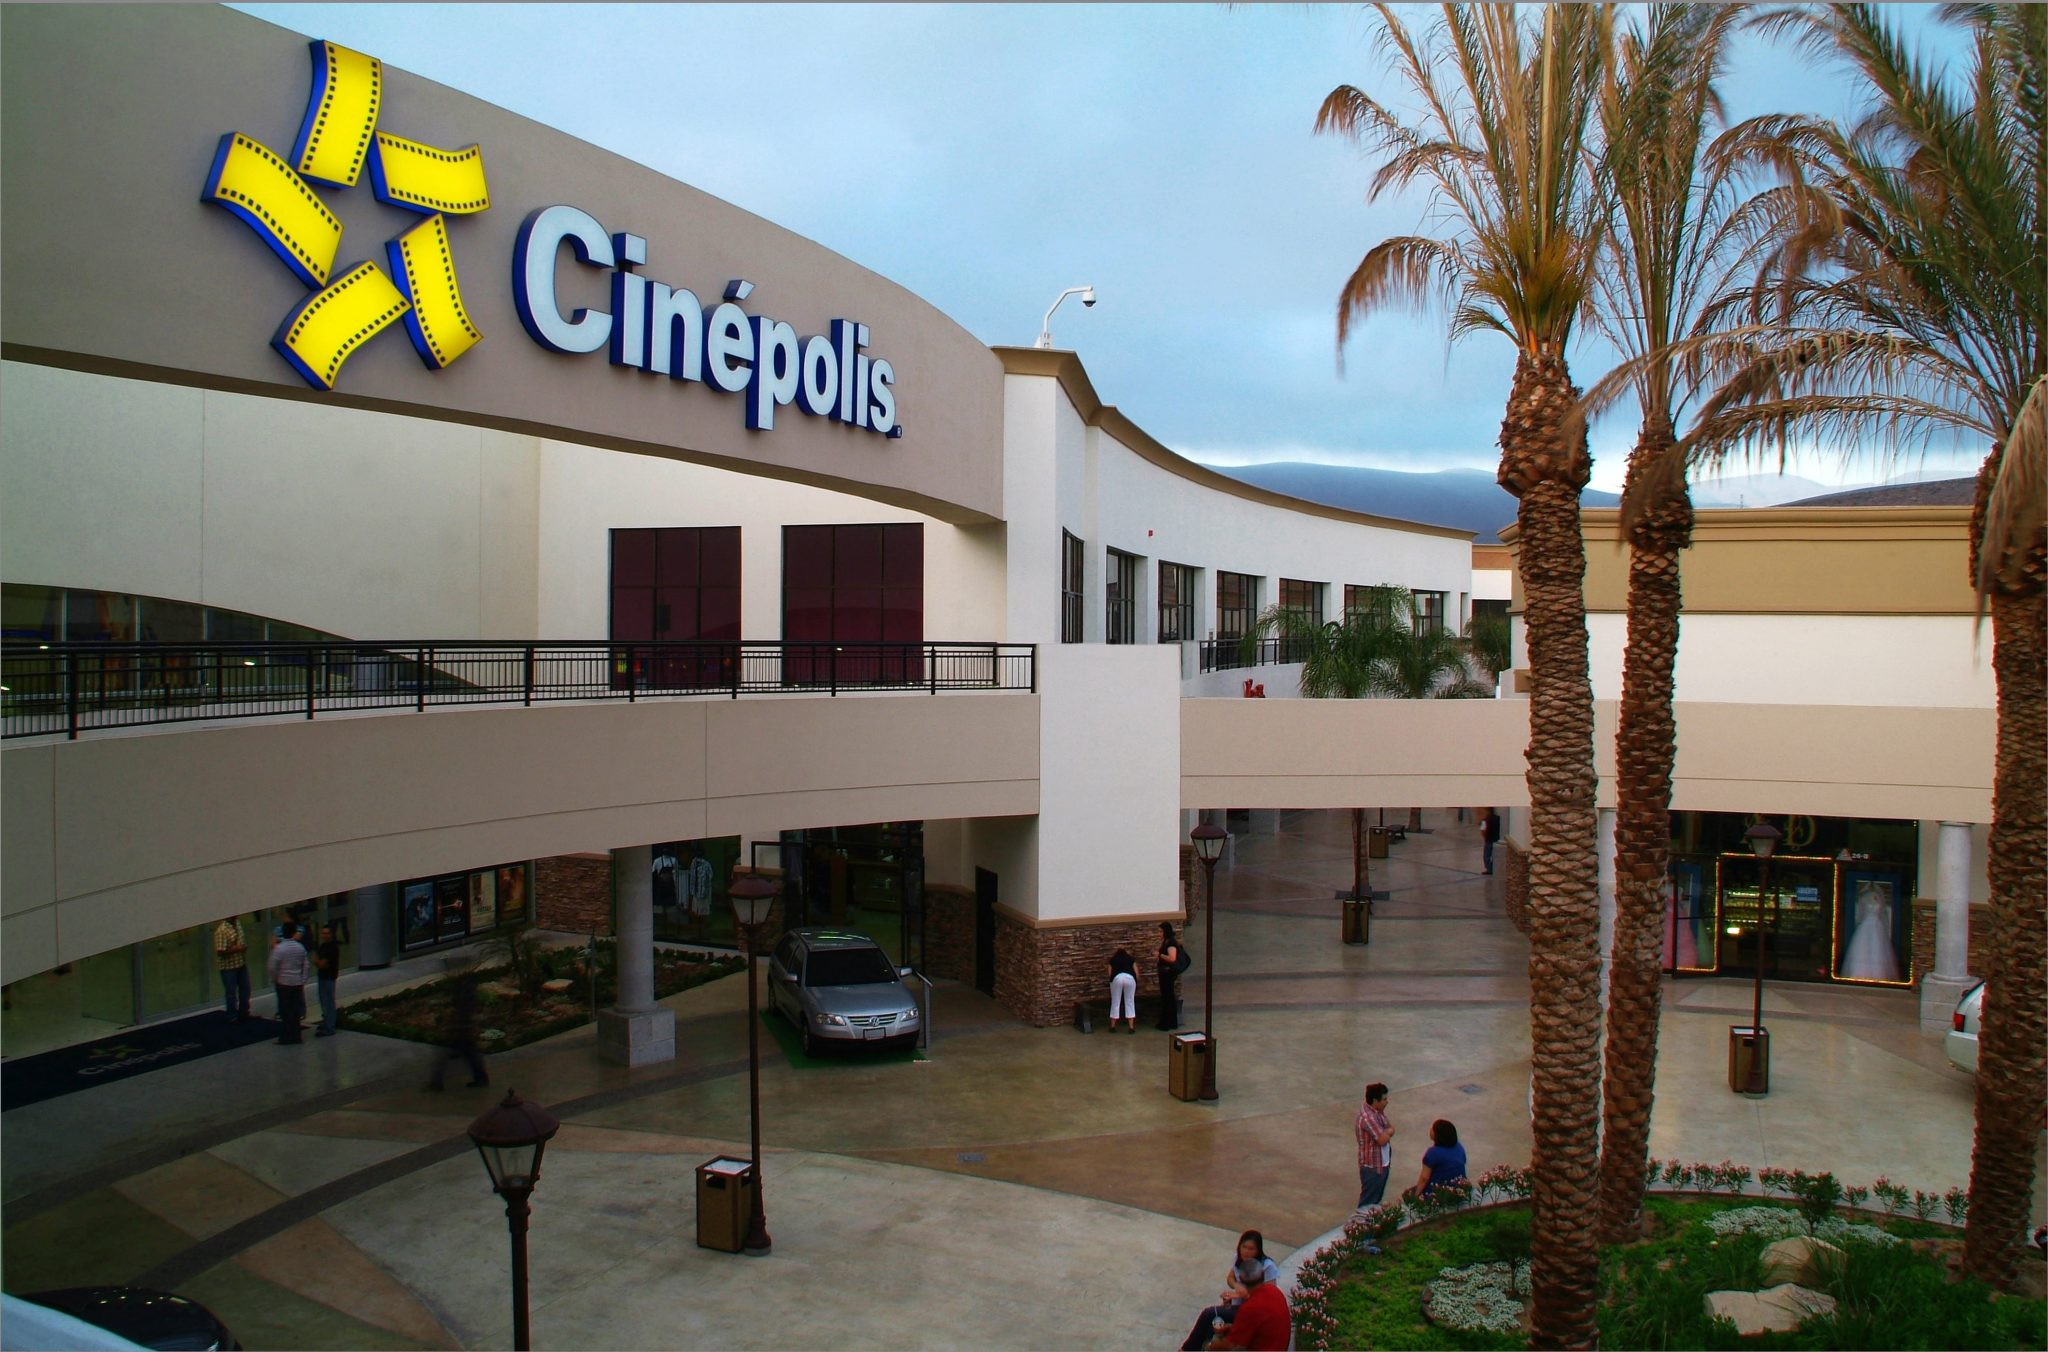 Plaza del Mar shopping Mall with Cinepolis movie theater in Ensenada